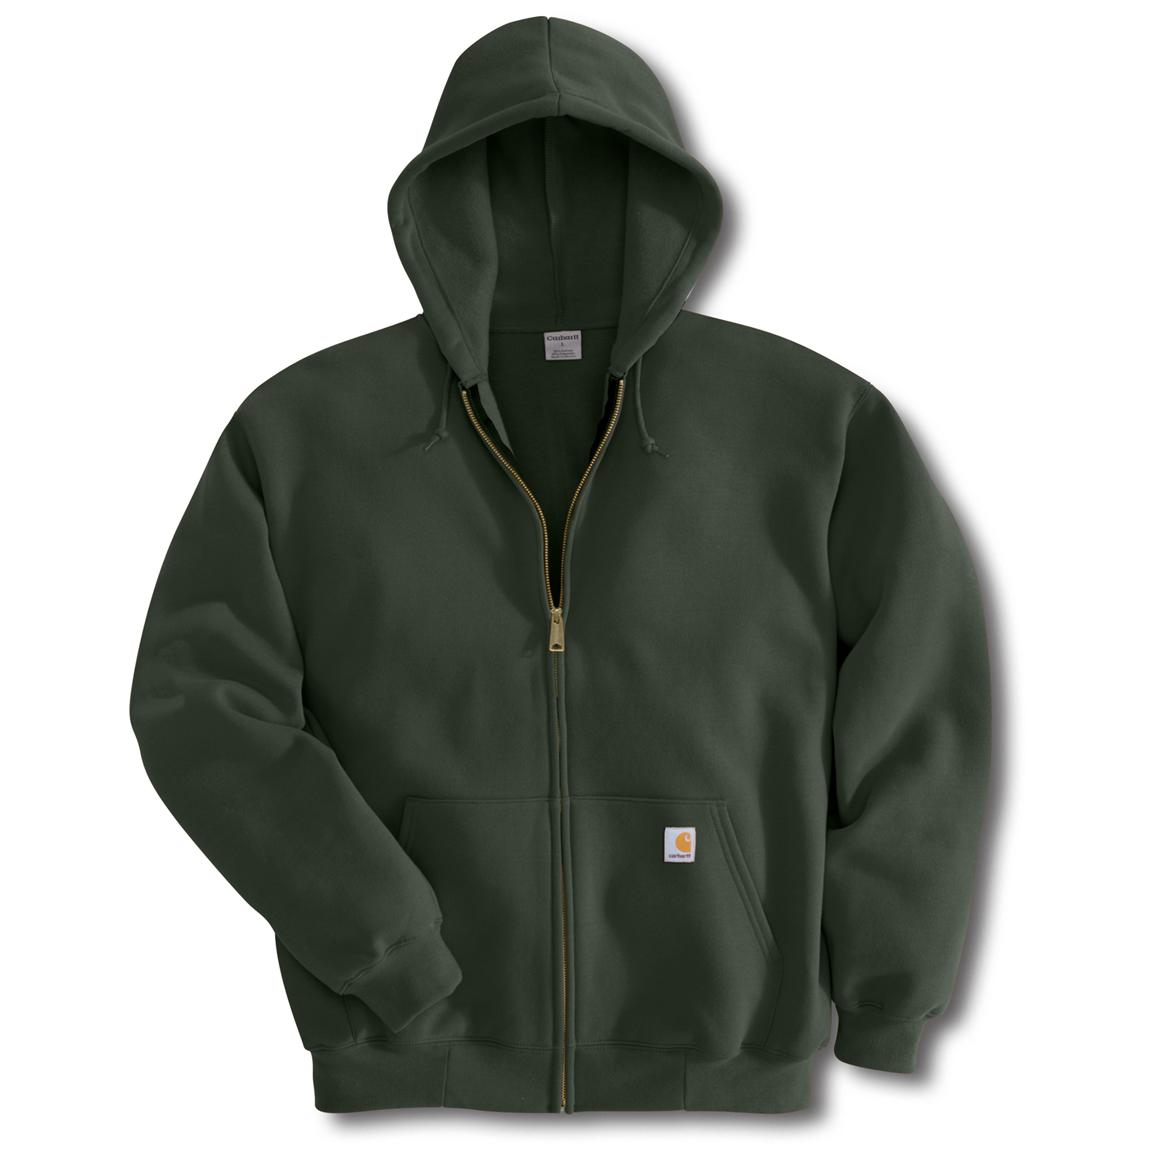 Carhartt Midweight Zip-Front Hooded Sweatshirt, Olive Green (Slight Irregulars)